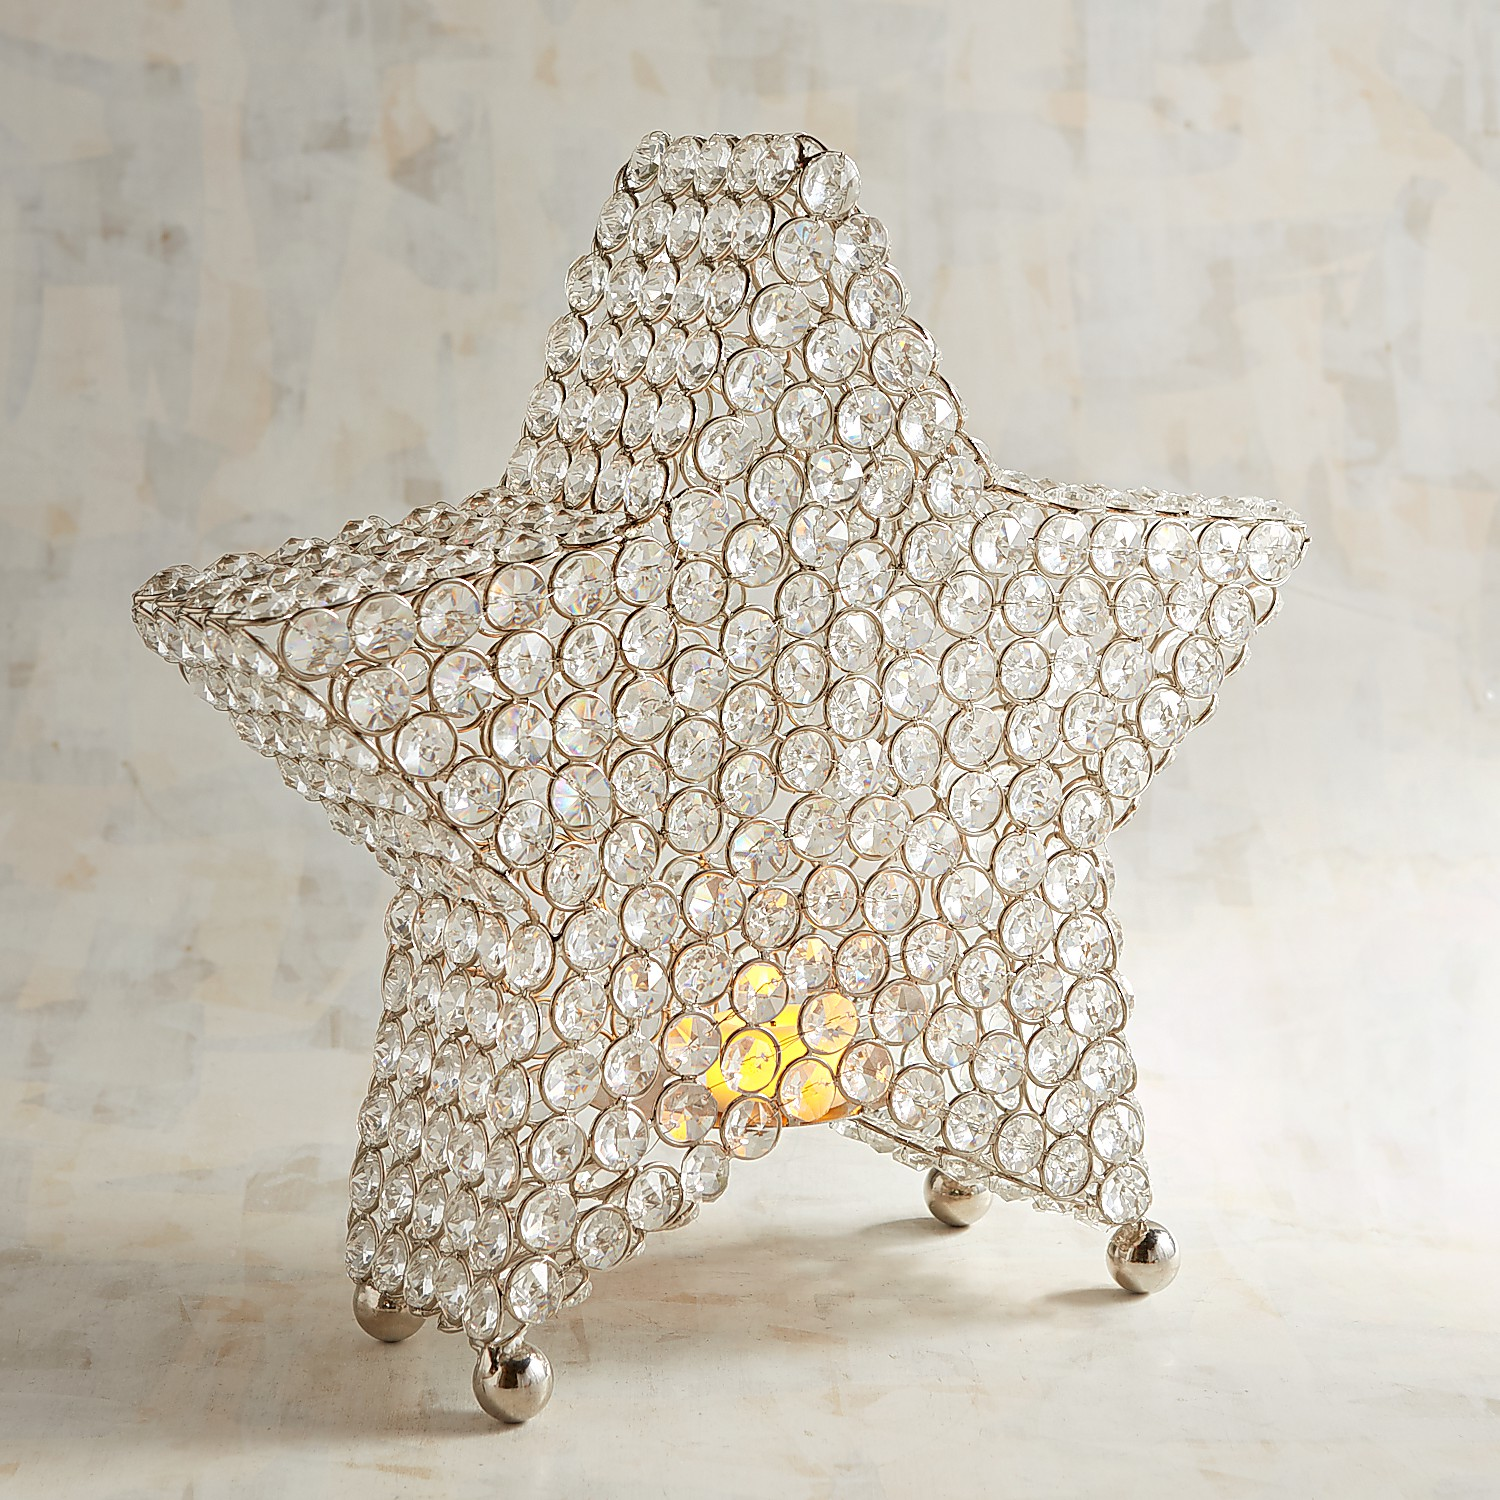 Crystal Star Tealight Candle Holder